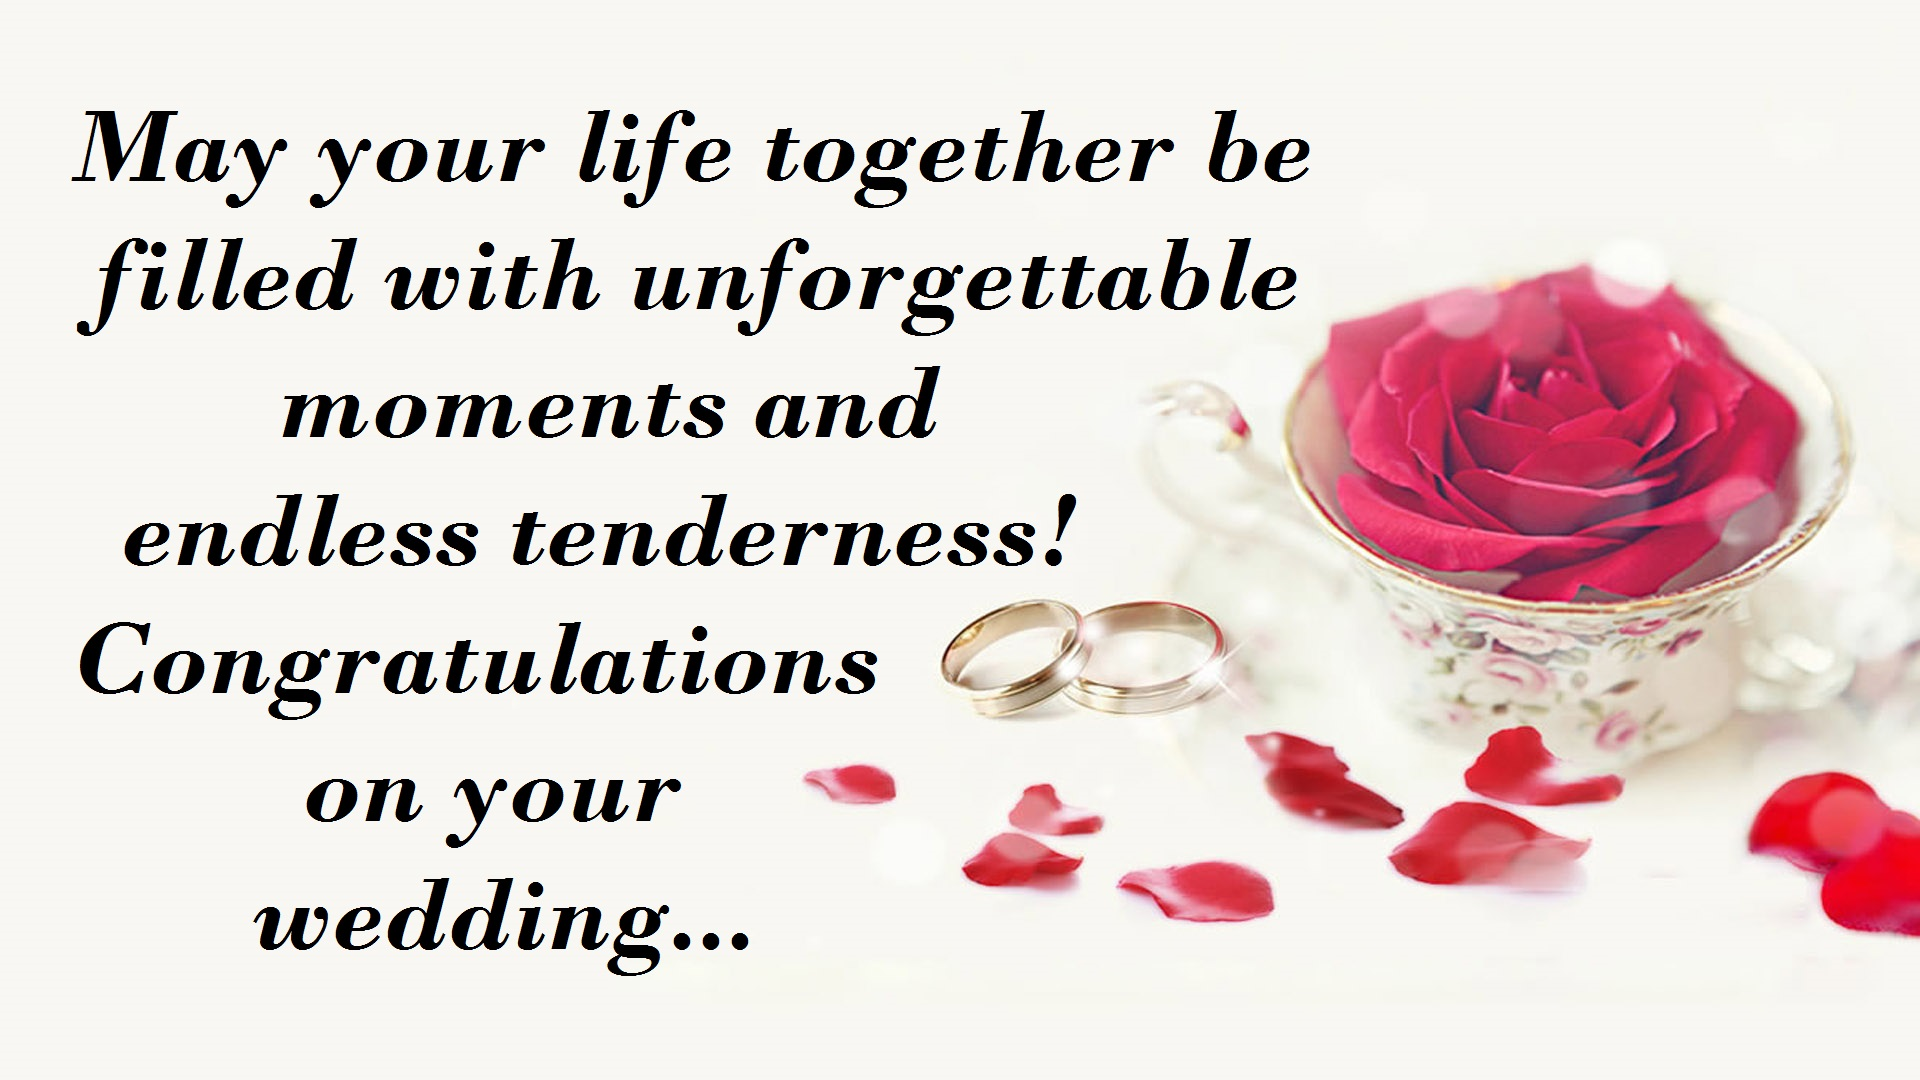 Marriage Life Wishes Images Hd Many Hd Wallpaper